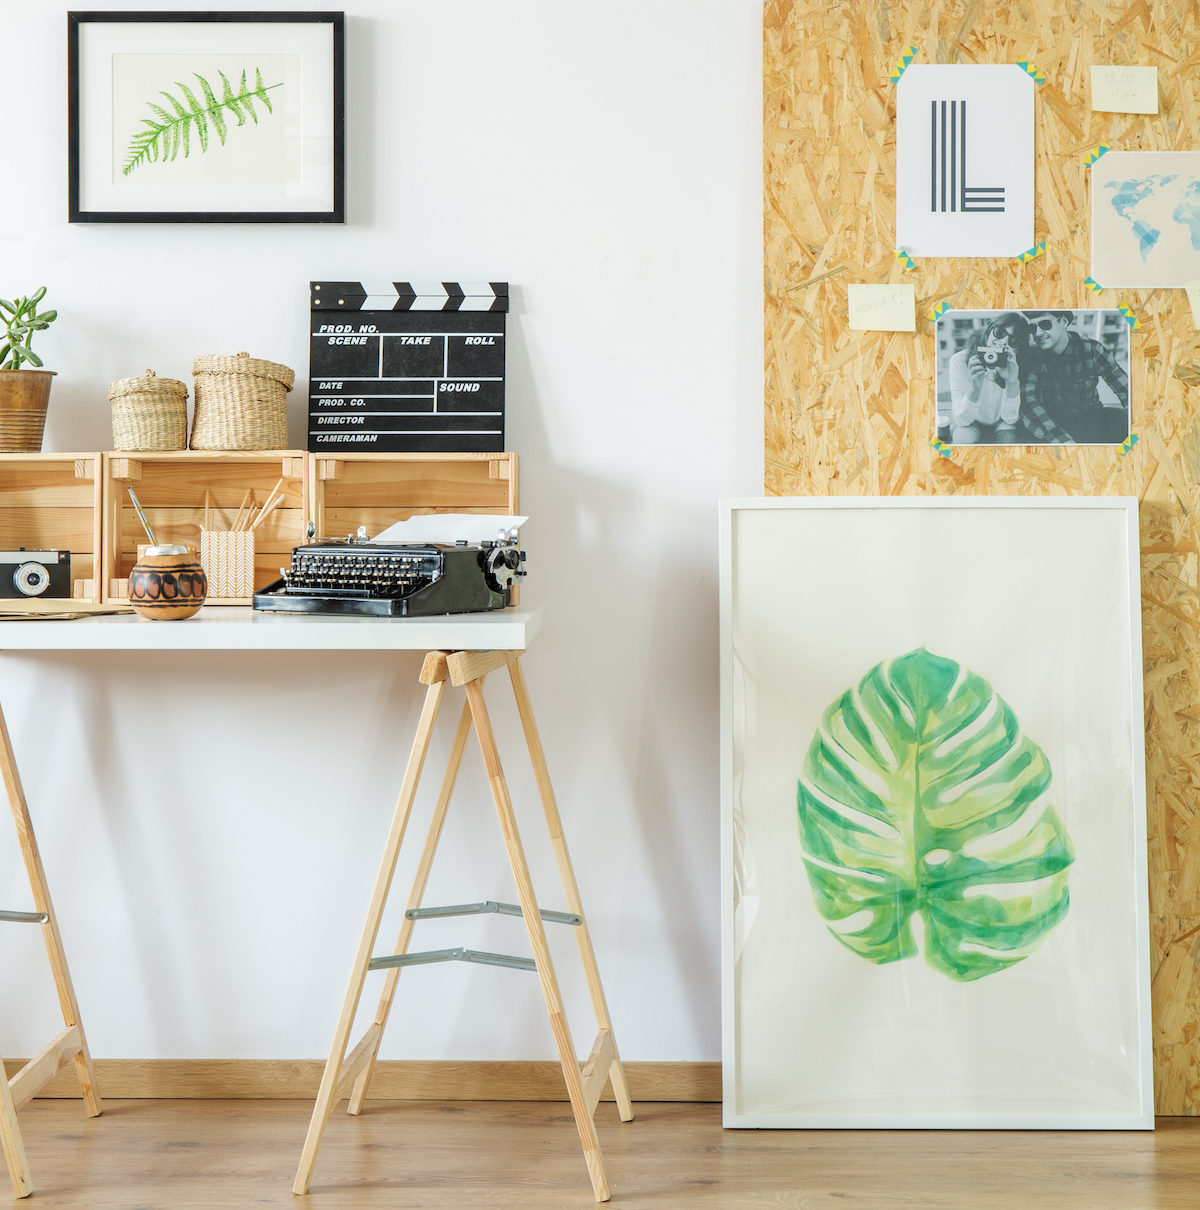 Artist's,Workspace,With,Simple,Wooden,Furniture,And,Paintings